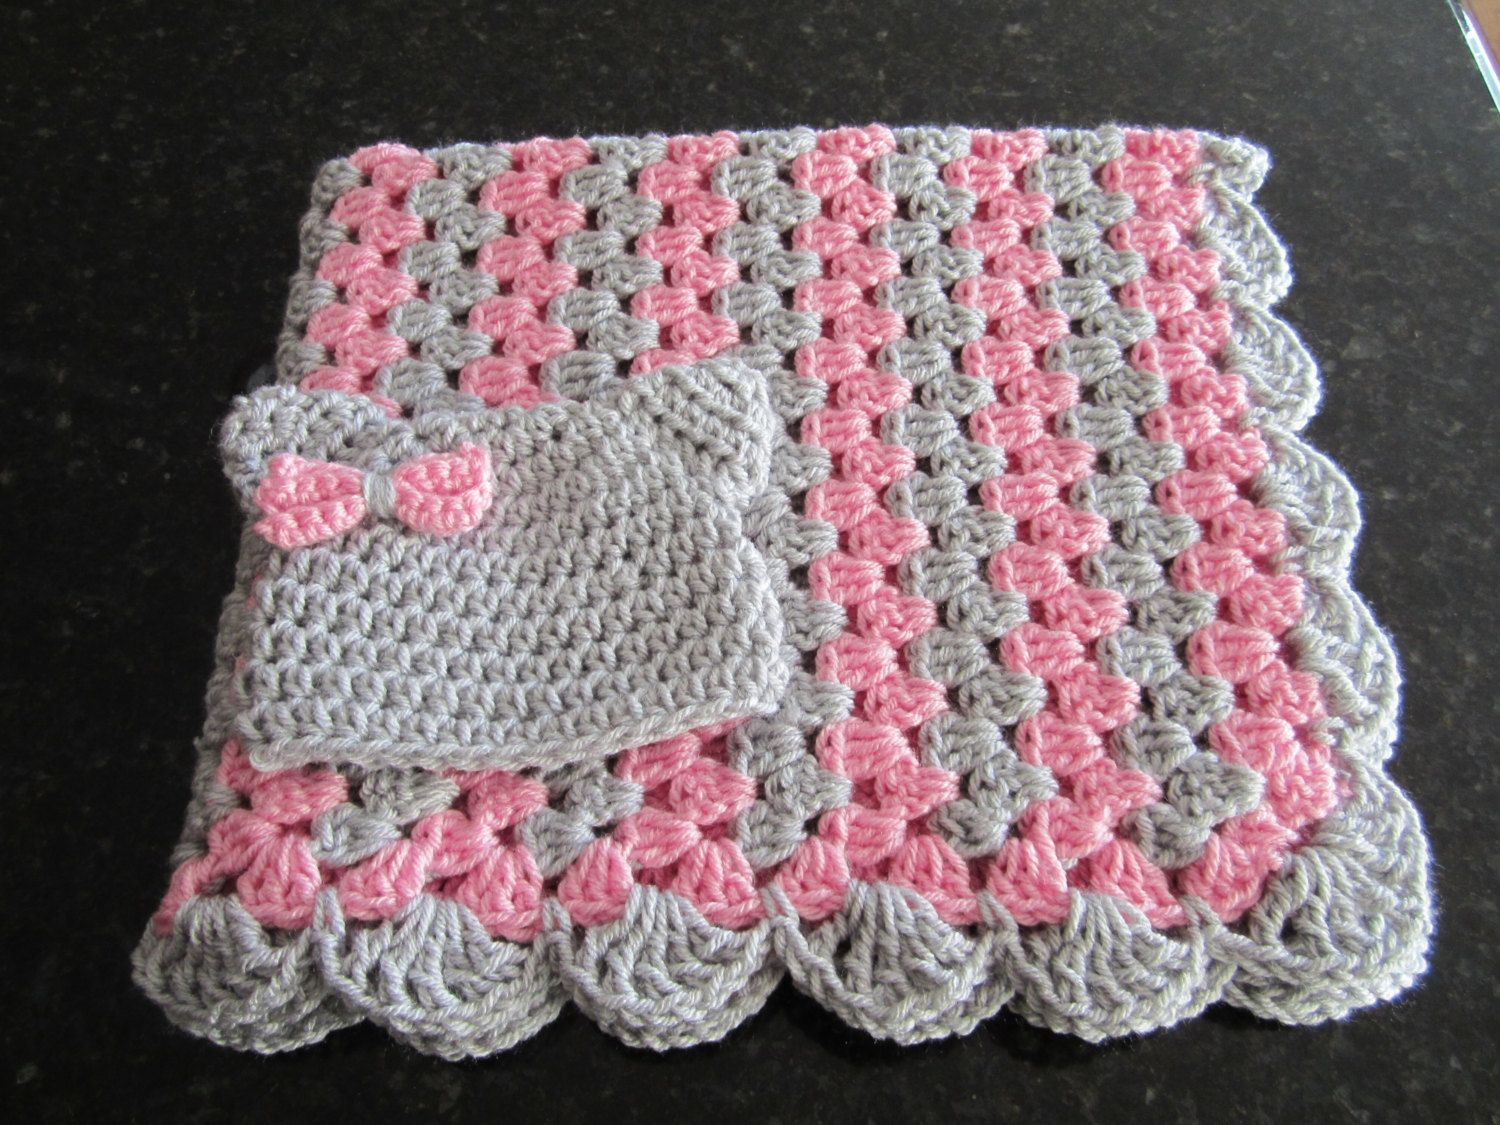 Pink and gray crochet baby blanket baby girl blanket set crochet cute baby girl blanket crochet patterns pink and gray crochet baby blanket baby girl blanket set crochet jfydnxq crochet and knit bankloansurffo Choice Image